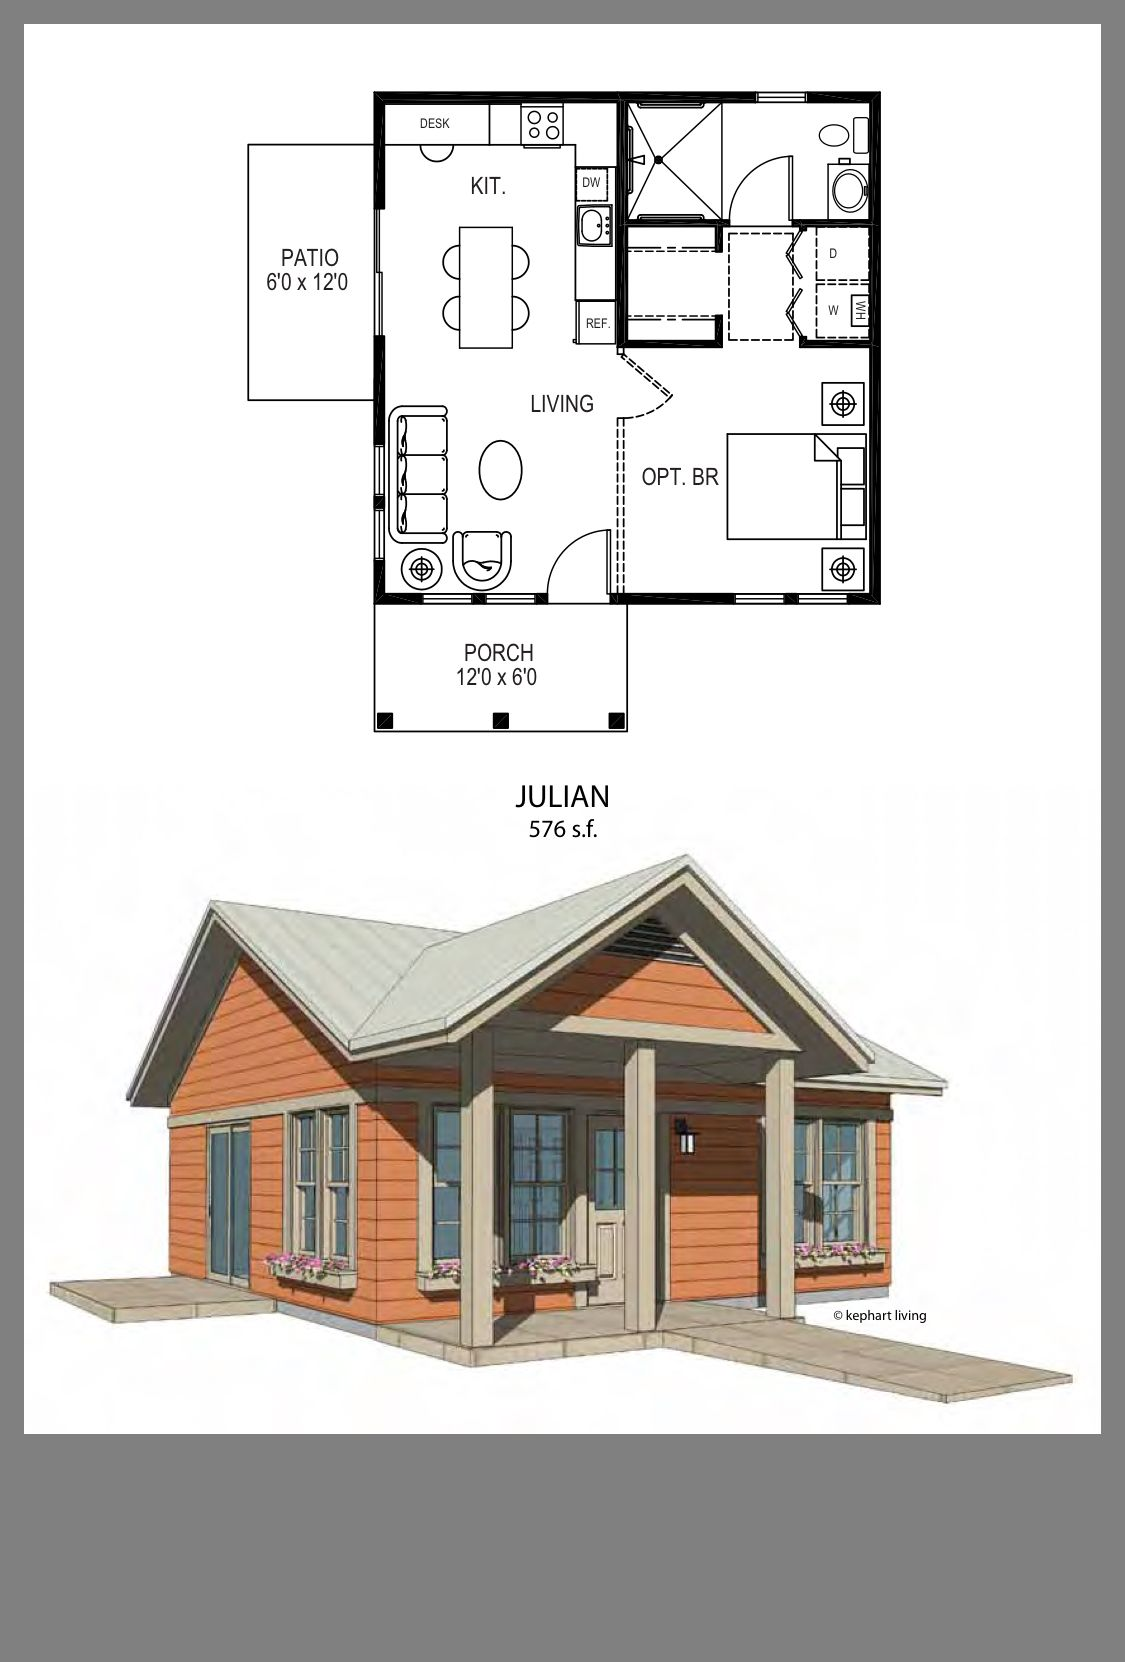 976913bce5a9c25cb27c6d8d7b3dc49f - View Small House Design Guide  PNG